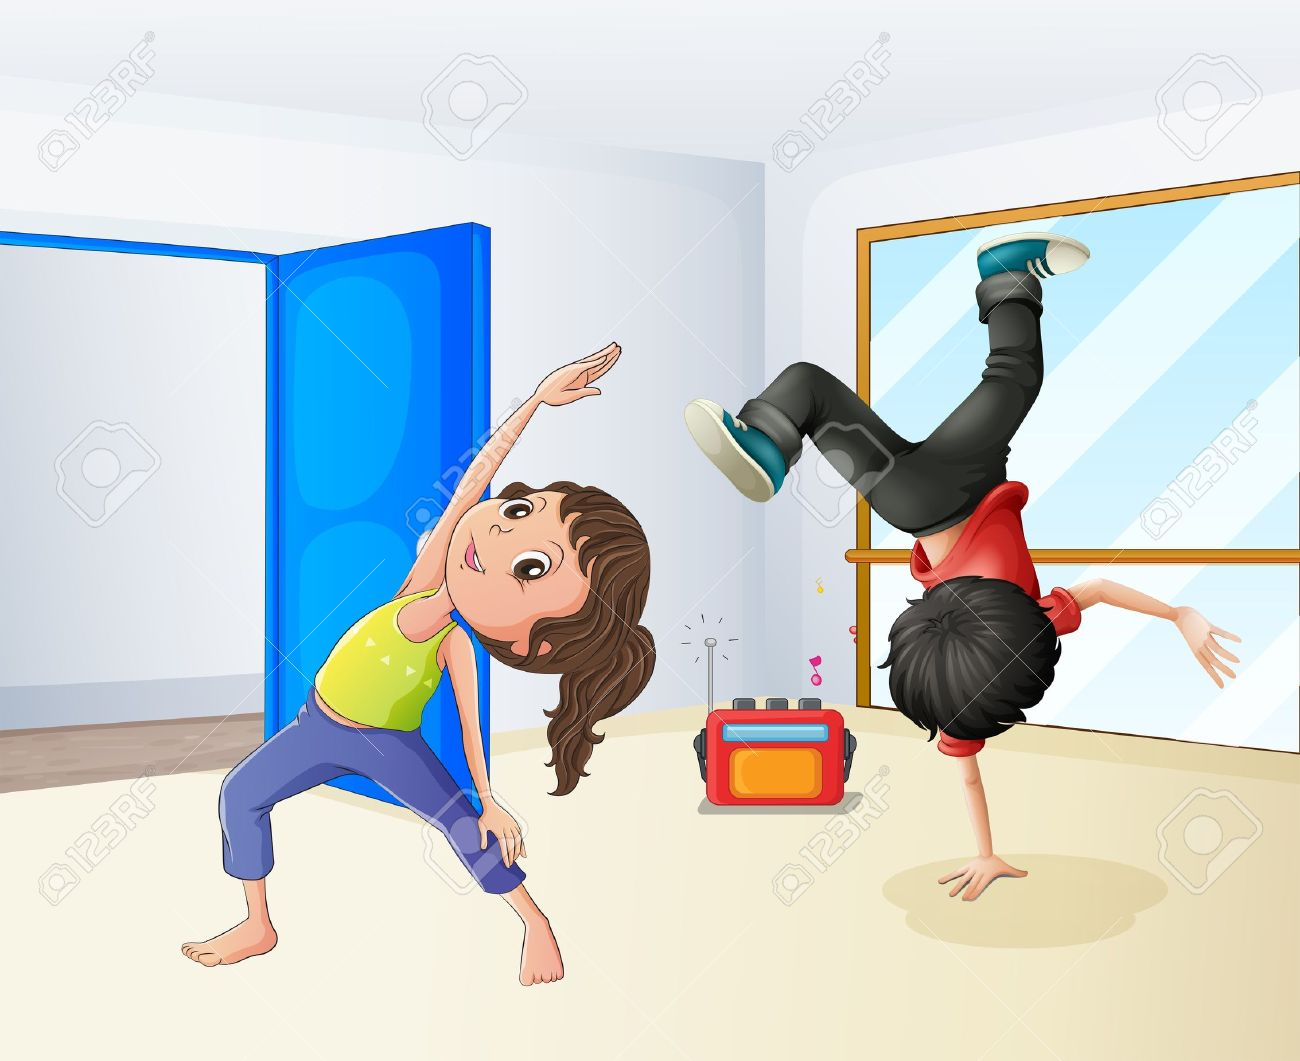 Illustration of a girl and a boy dancing - 18210229